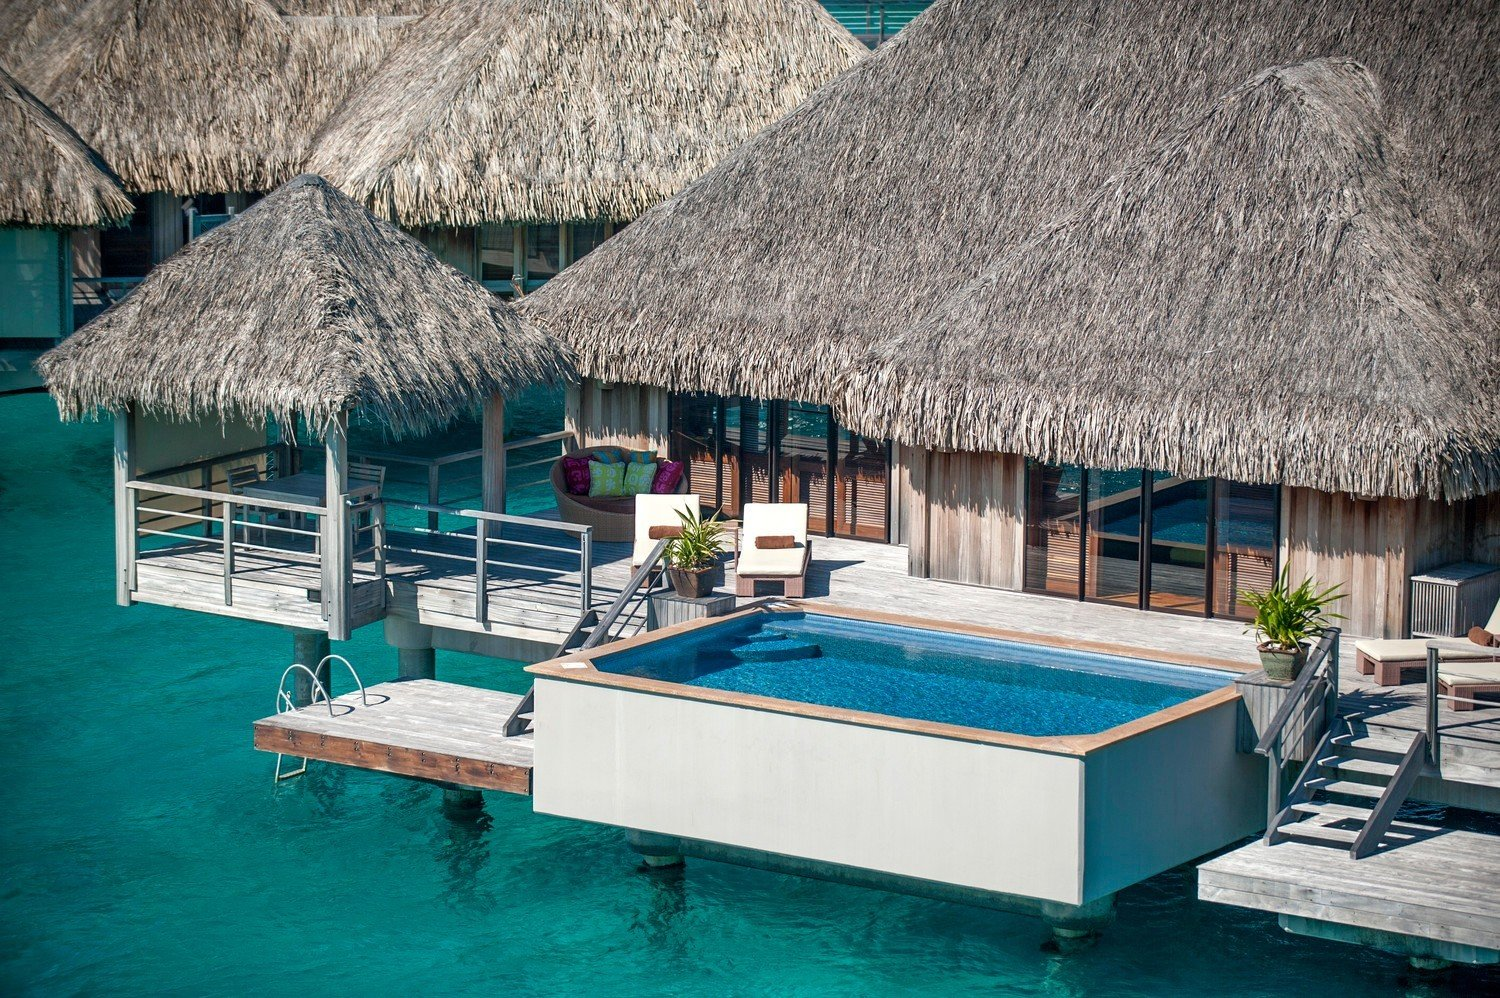 All-Inclusive Resorts Boutique Hotels Hotels Romance roof umbrella chair building leisure Pool blue swimming pool Resort hut lawn furniture swimming several